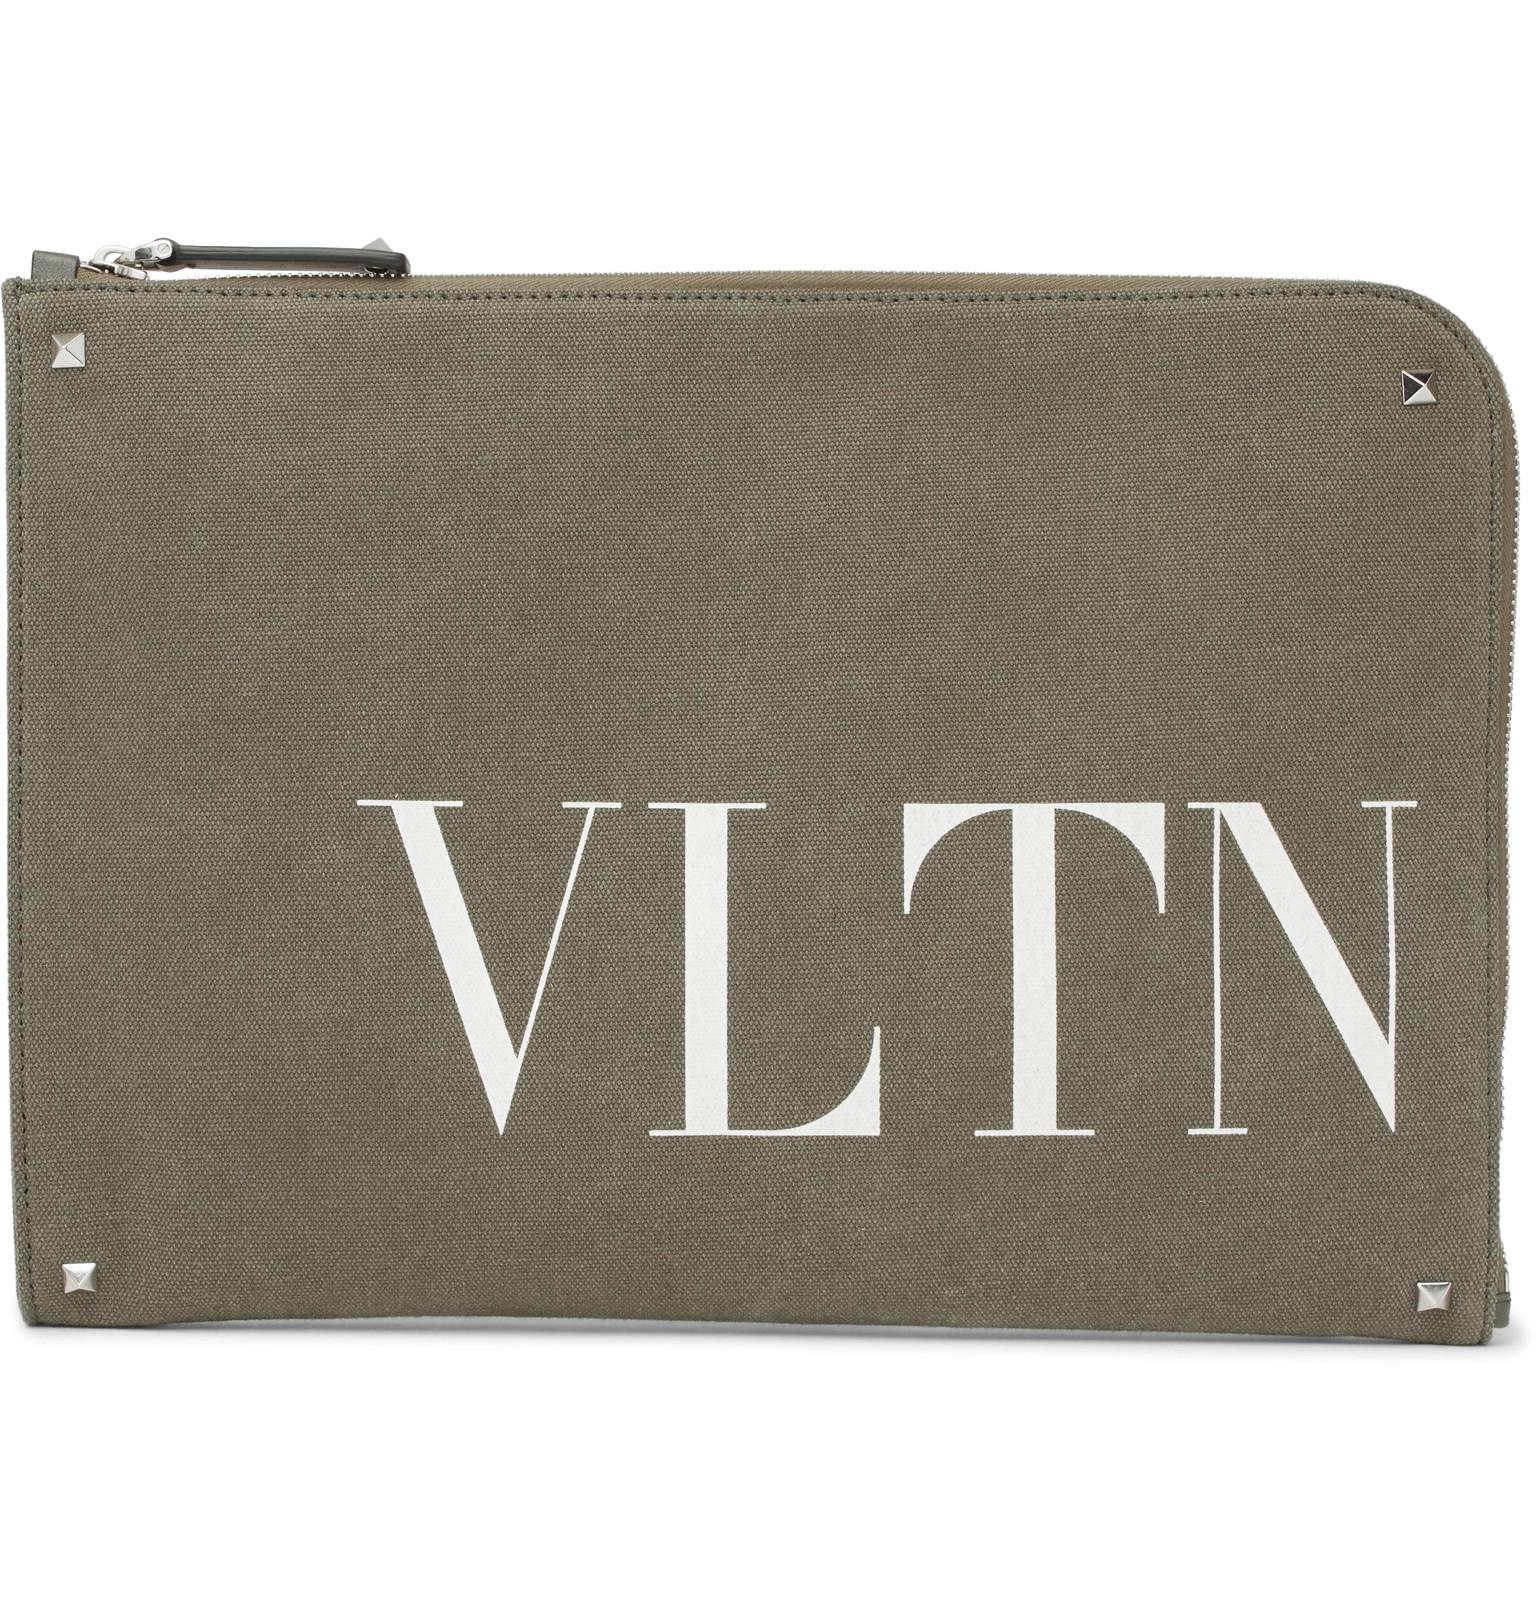 Valentino VLTN print canvas clutch